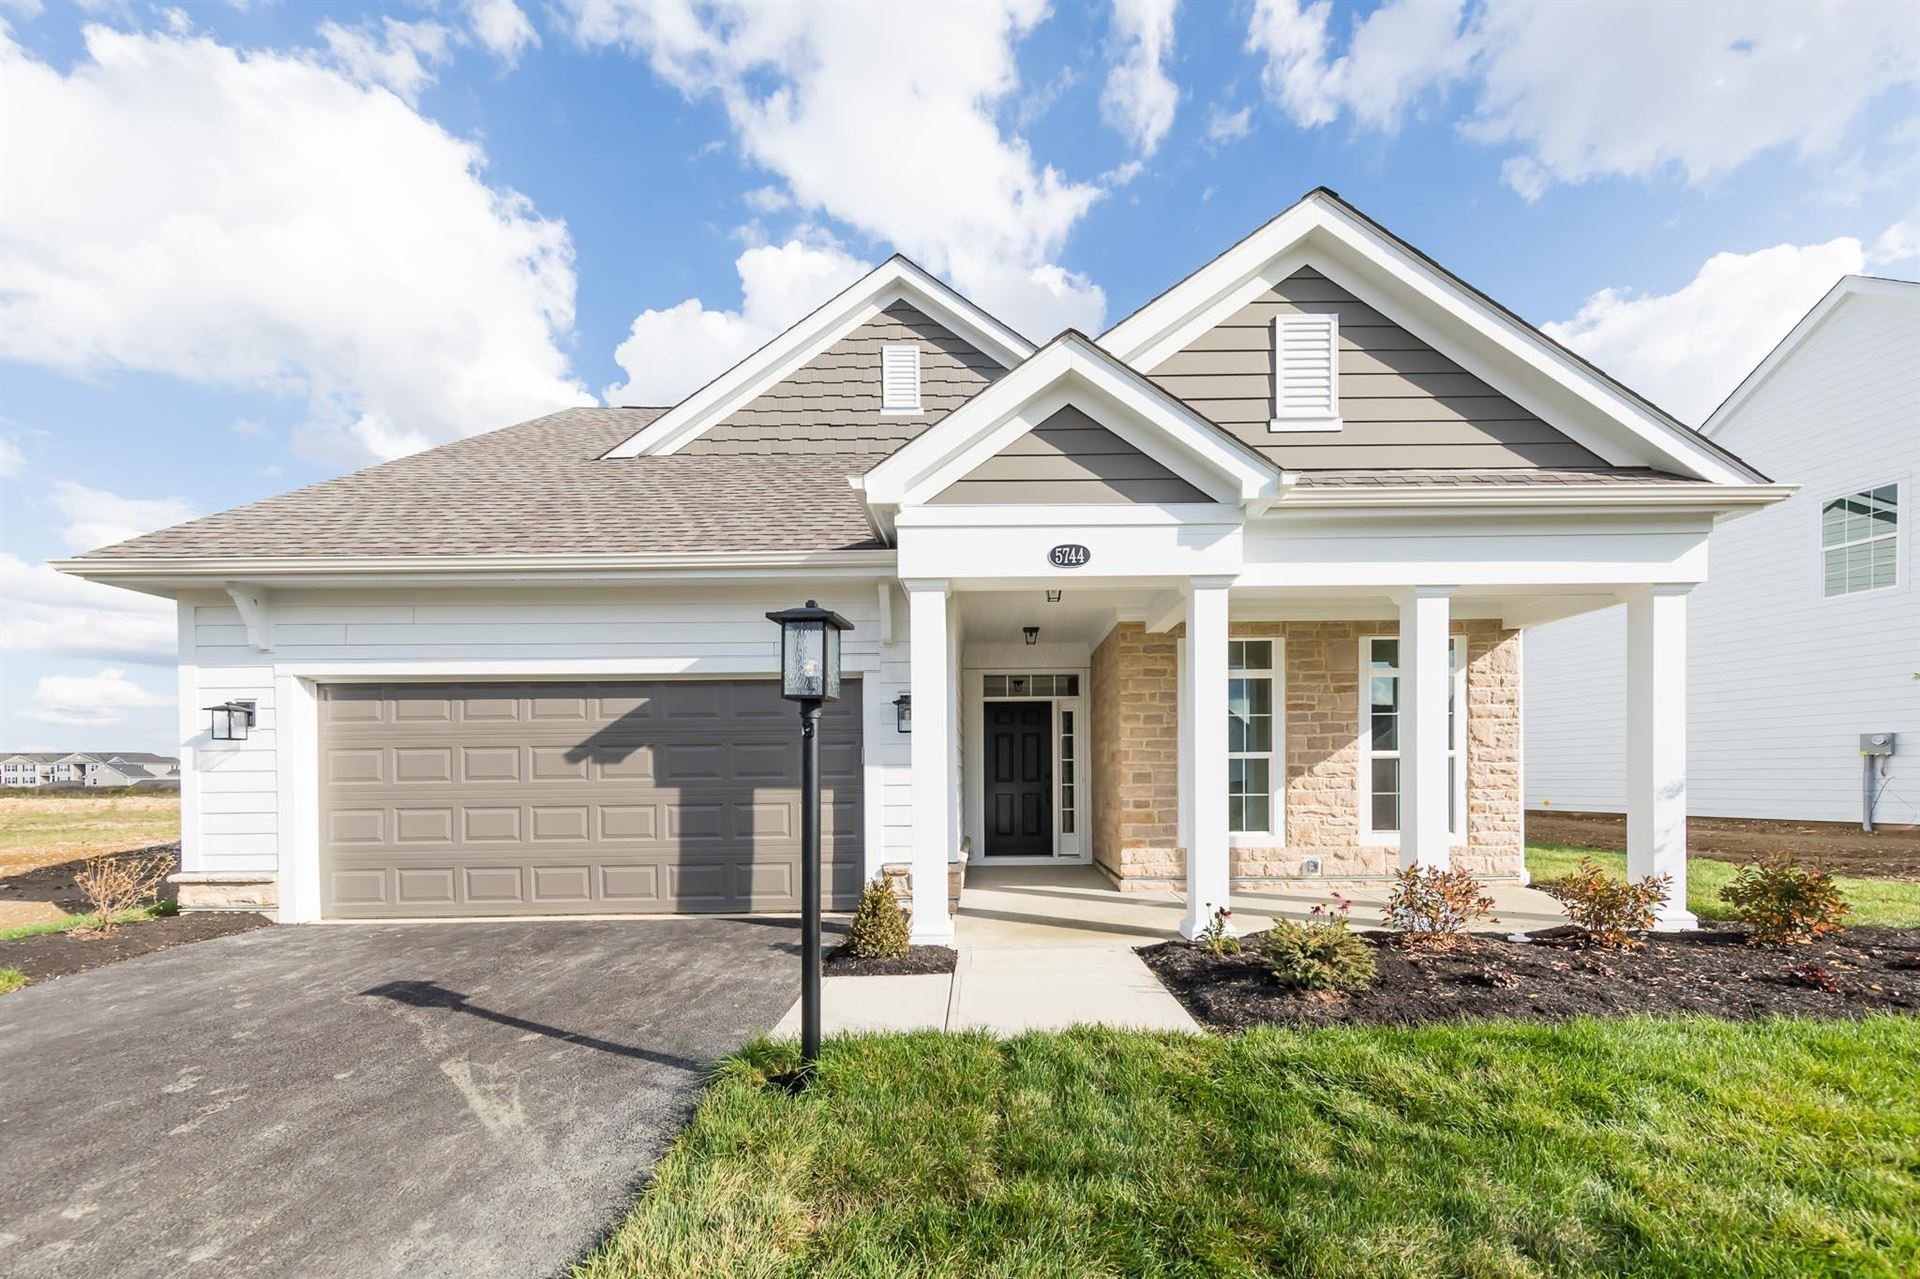 5744 Caulfield Lane, Dublin, OH 43016 - #: 220037148